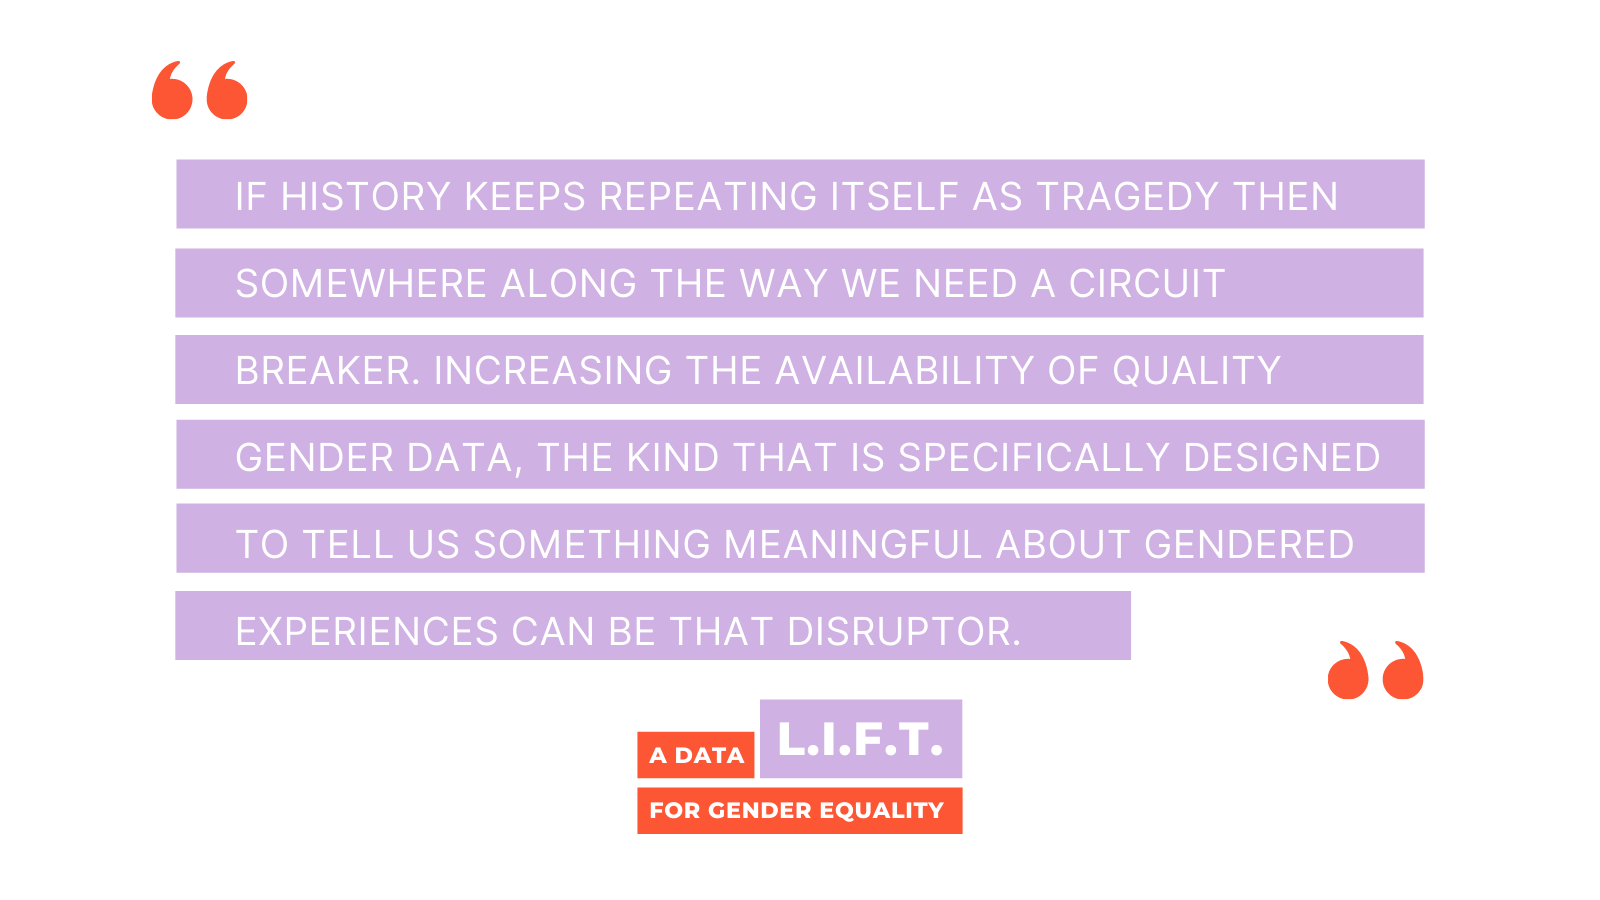 """Purple and orange block text that reads """"If history keeps repeating itself as tragedy then somewhere along the way we need a circuit breaker. Increasing the availability of quality gender data, the kind that is specifically designed to tell us something meaningful about gendered experiences can be that disruptor."""" With large orange quotation marks."""